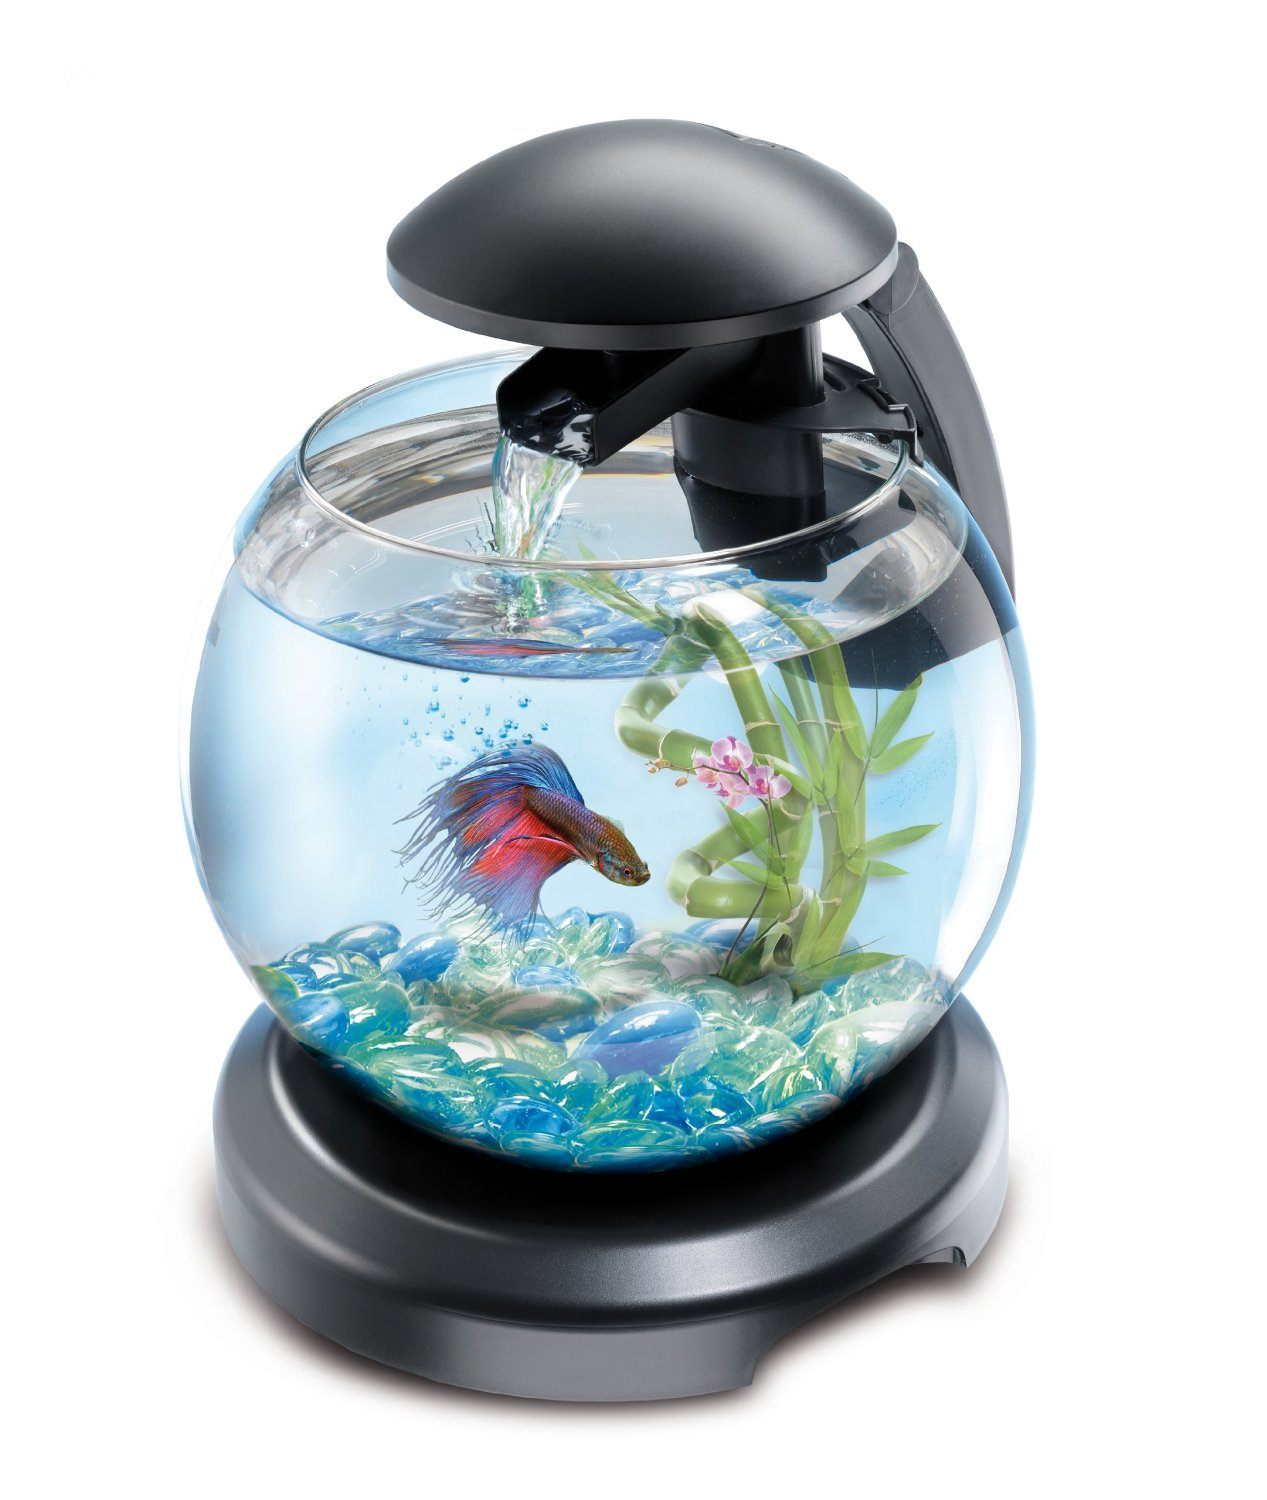 tetra cascade globe aquarium design quip de 6 8 l pour poissons d 39 eau froide zolux pas. Black Bedroom Furniture Sets. Home Design Ideas